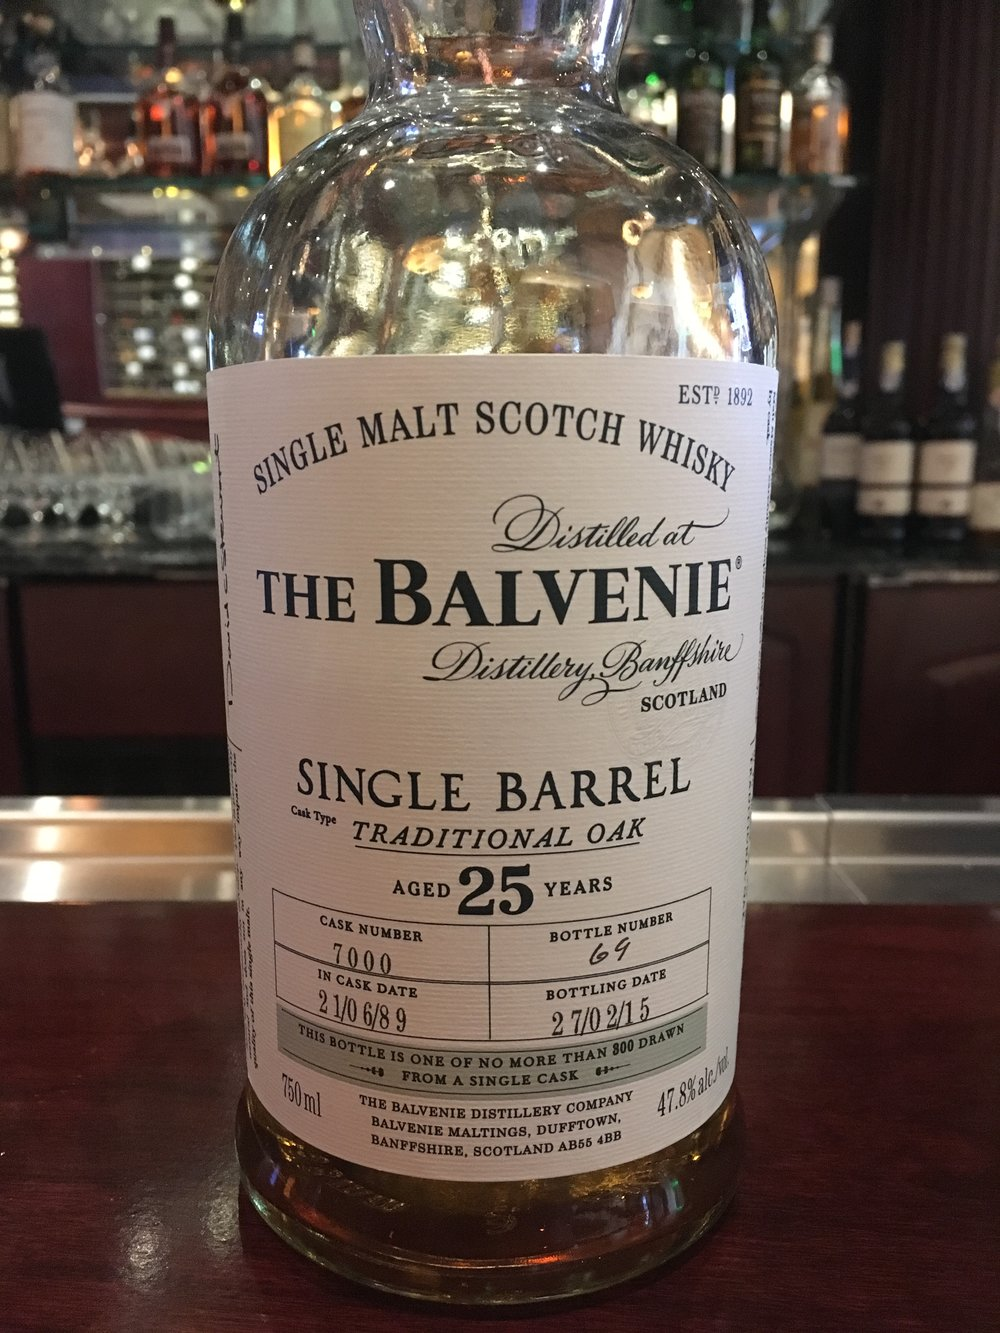 25 Year Old | 47.8% ABV - Distillery | Balvenie